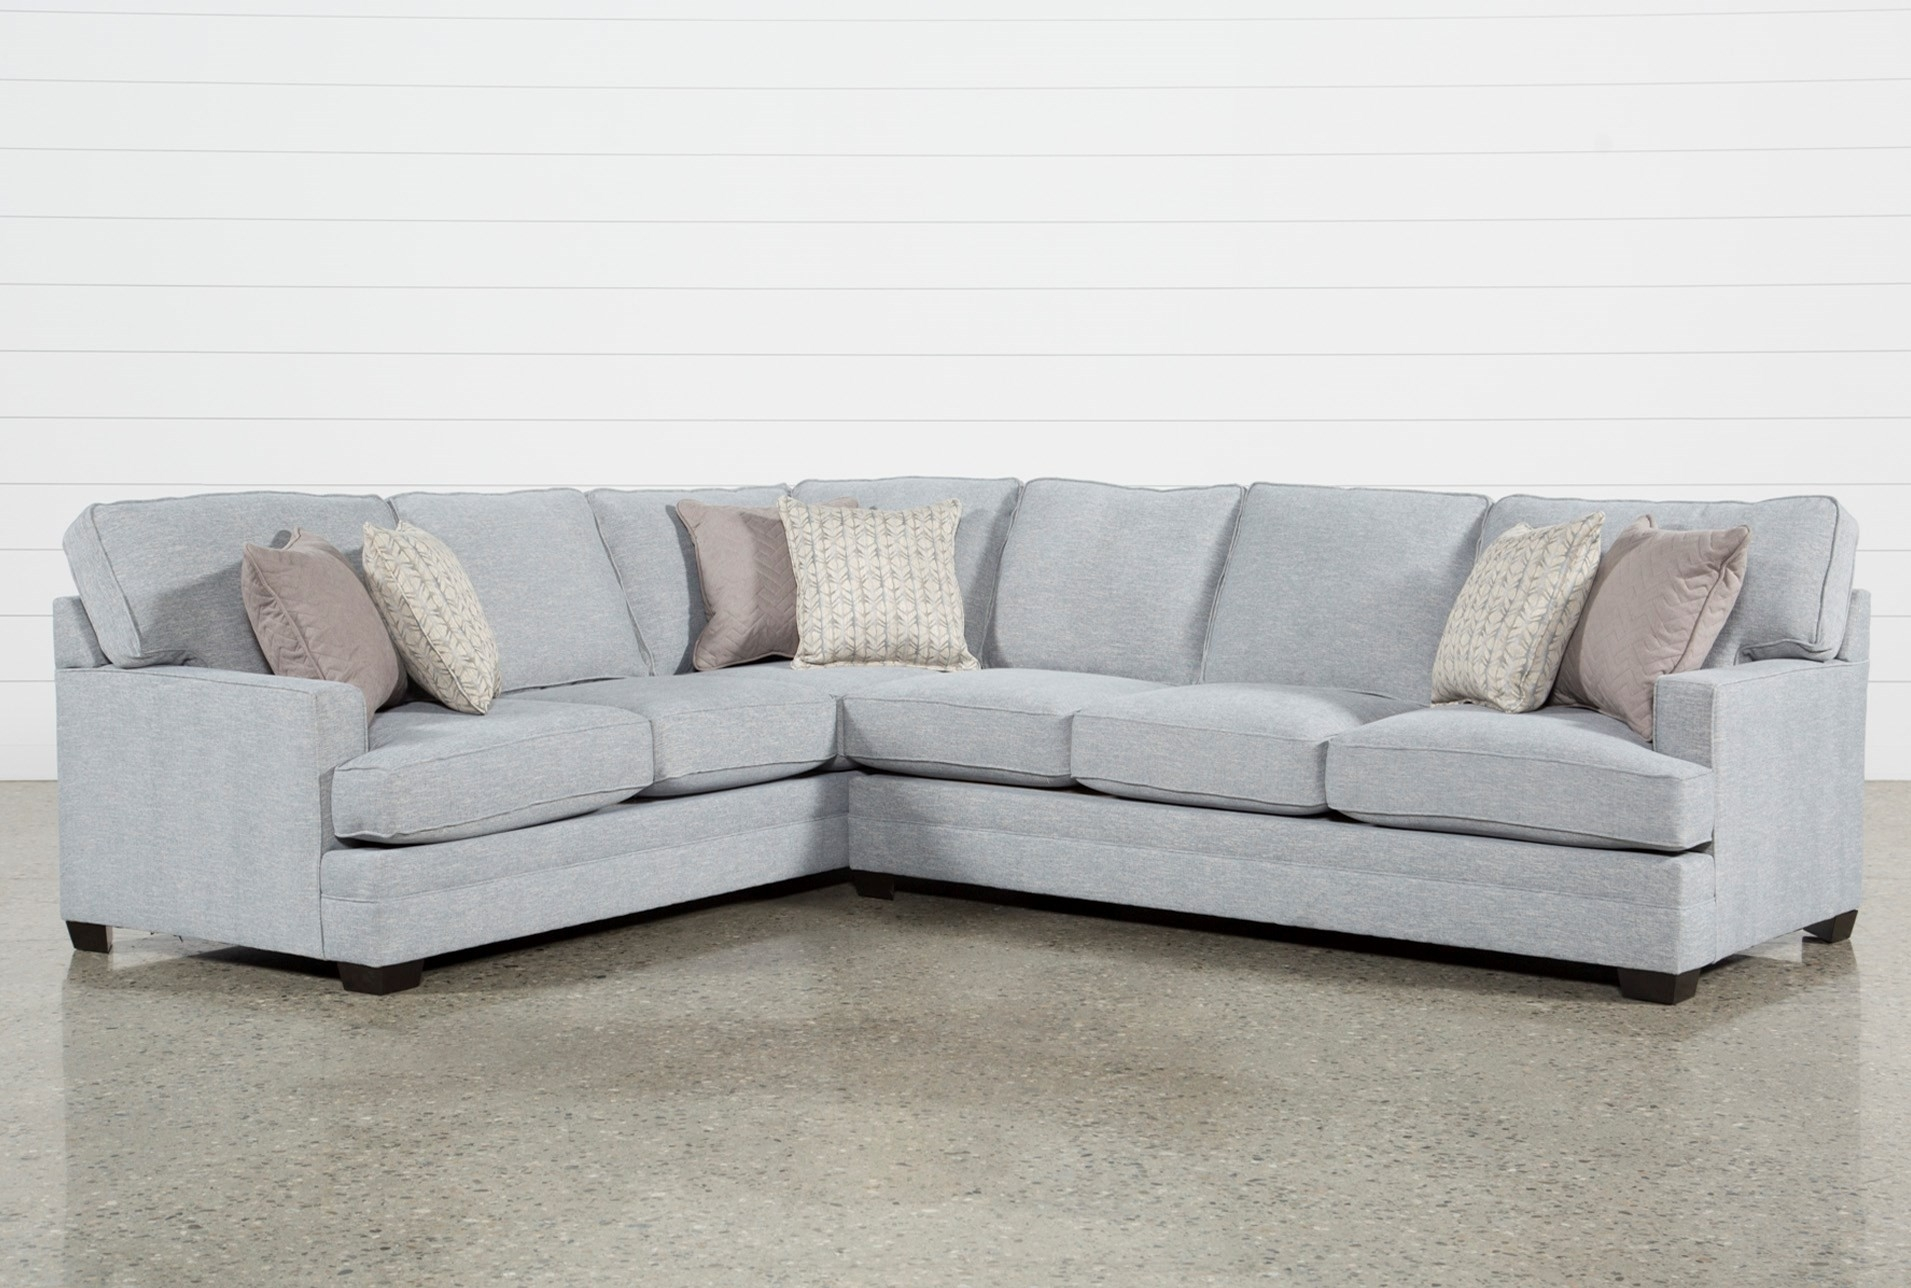 Living Spaces Sectional Cosmos Grey 2 Piece W Raf Chaise 206402 0 With Regard To Cosmos Grey 2 Piece Sectionals With Laf Chaise (View 4 of 25)